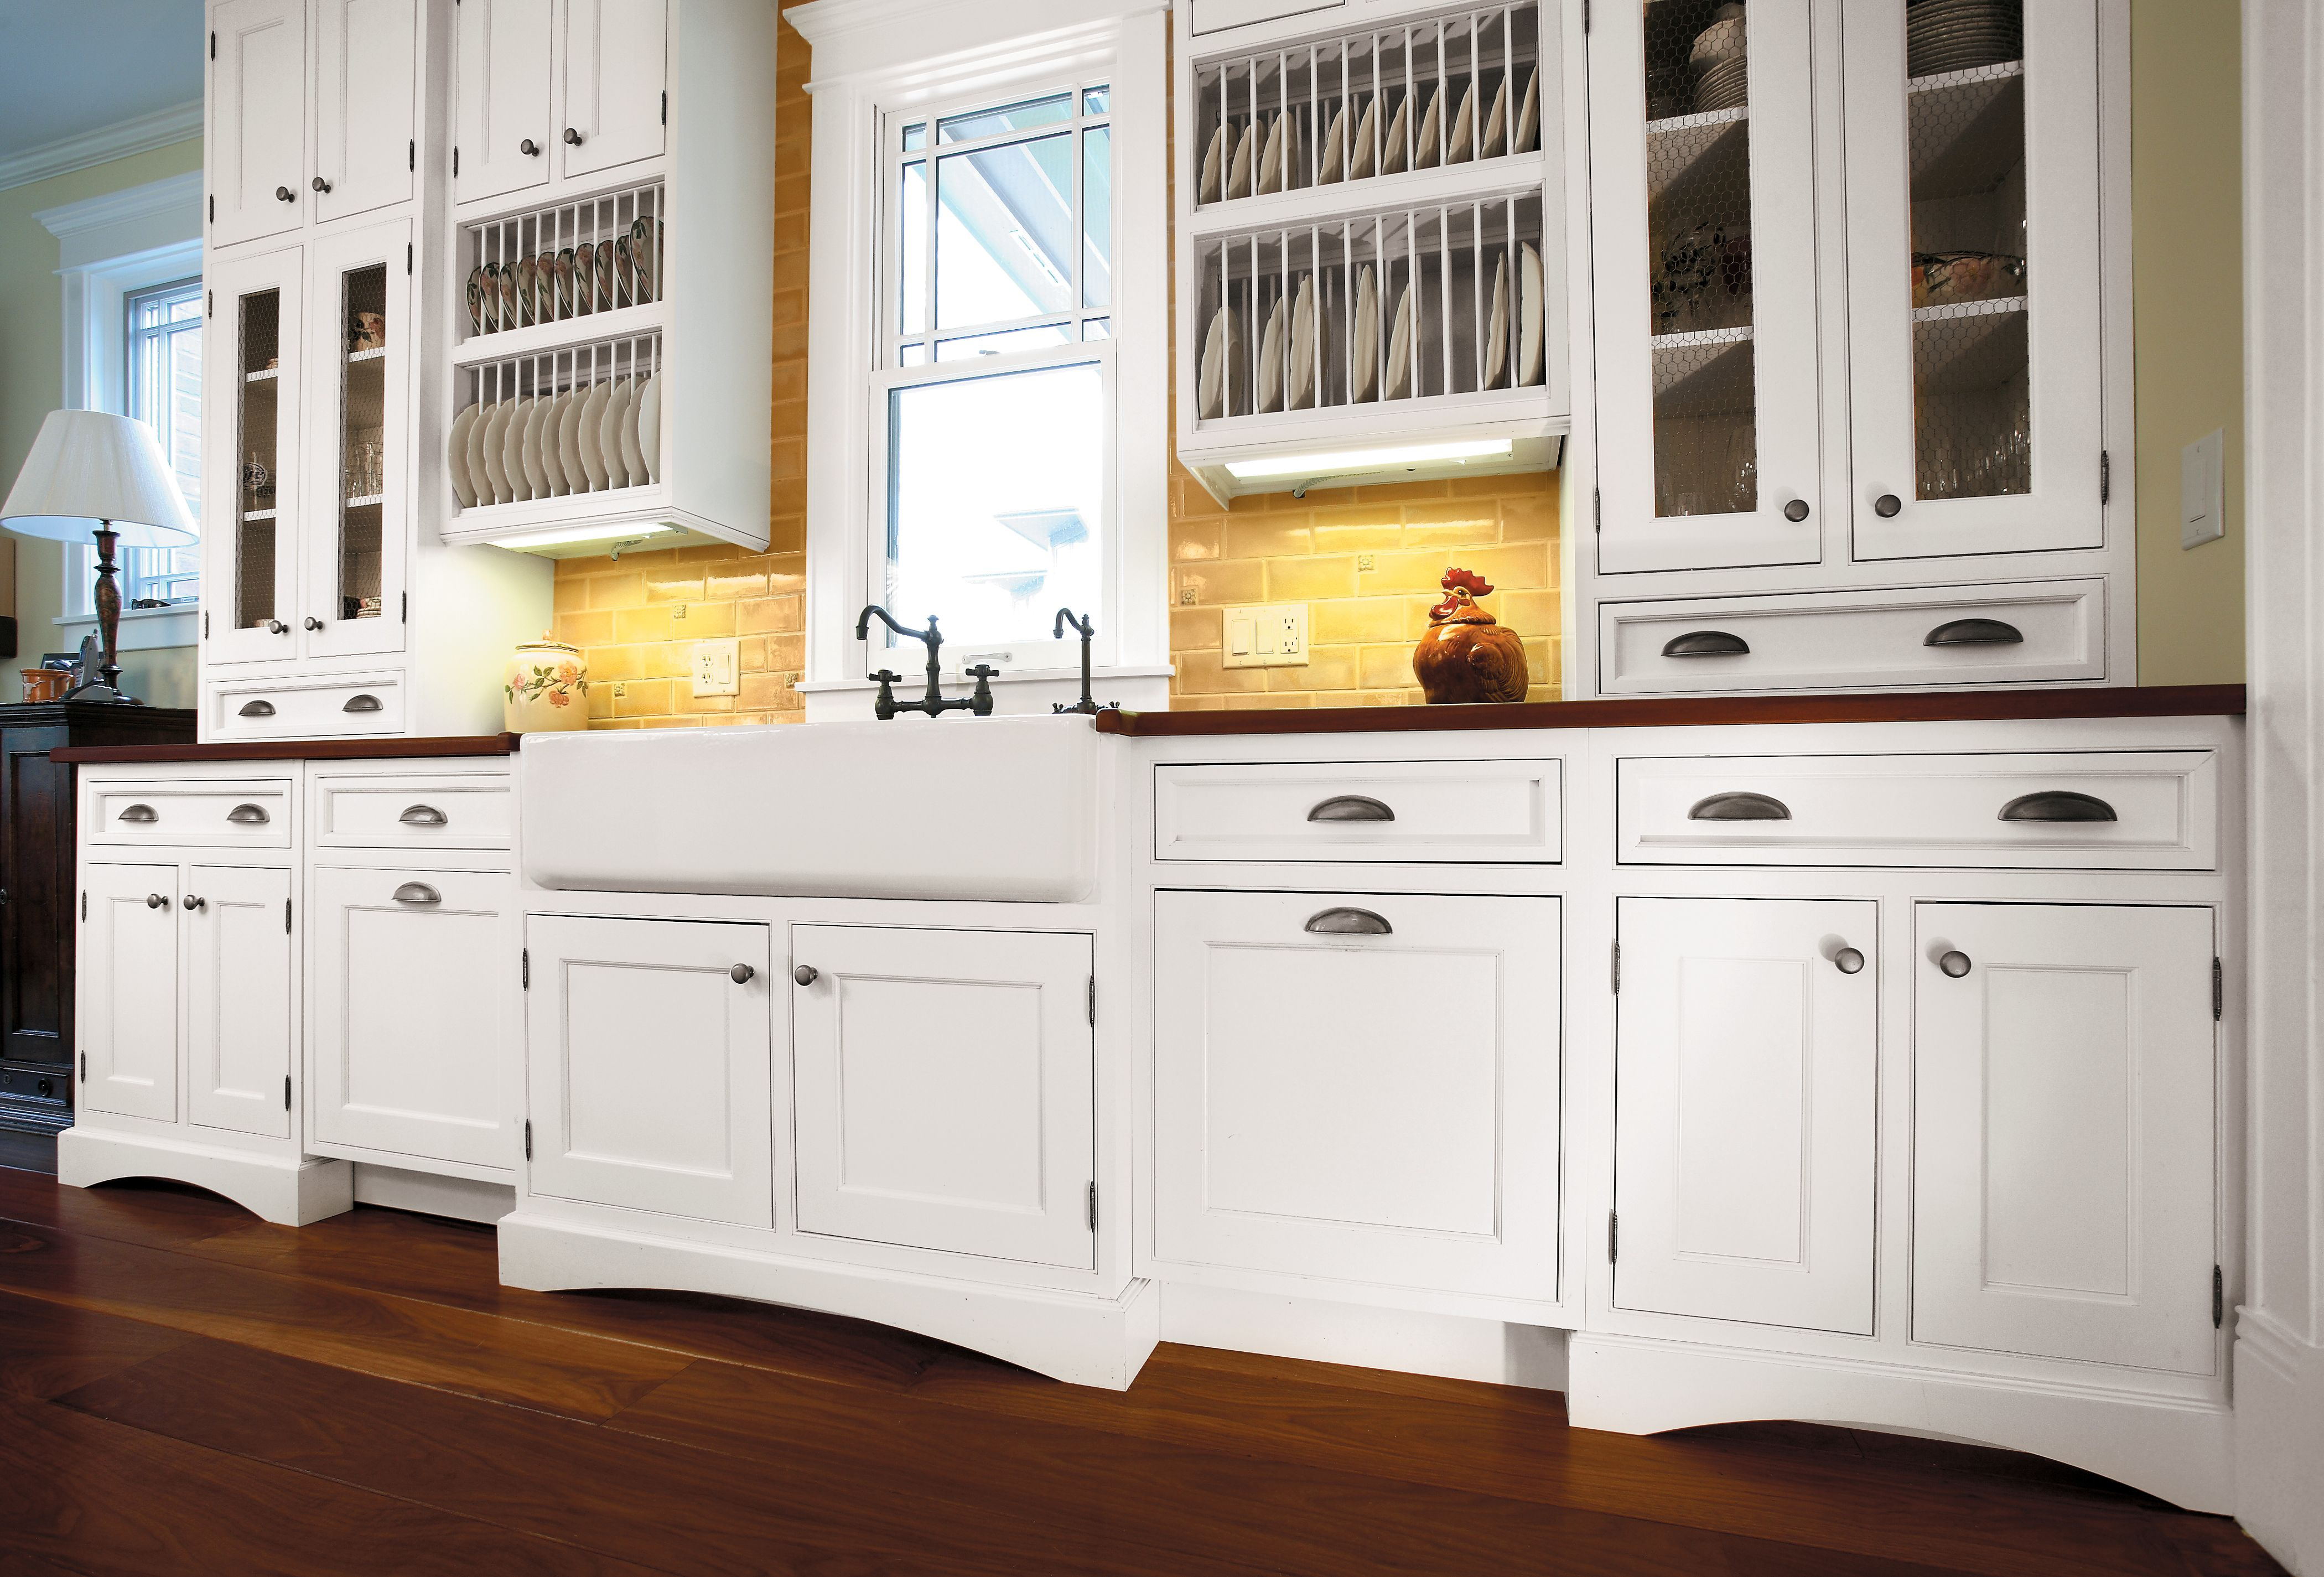 Custom Door Style Finished In Frosty White On Pgm Designed By Landmark Kitchen Design Craftsman Kitchen Cabinets Shaker Style Kitchens New Kitchen Cabinets